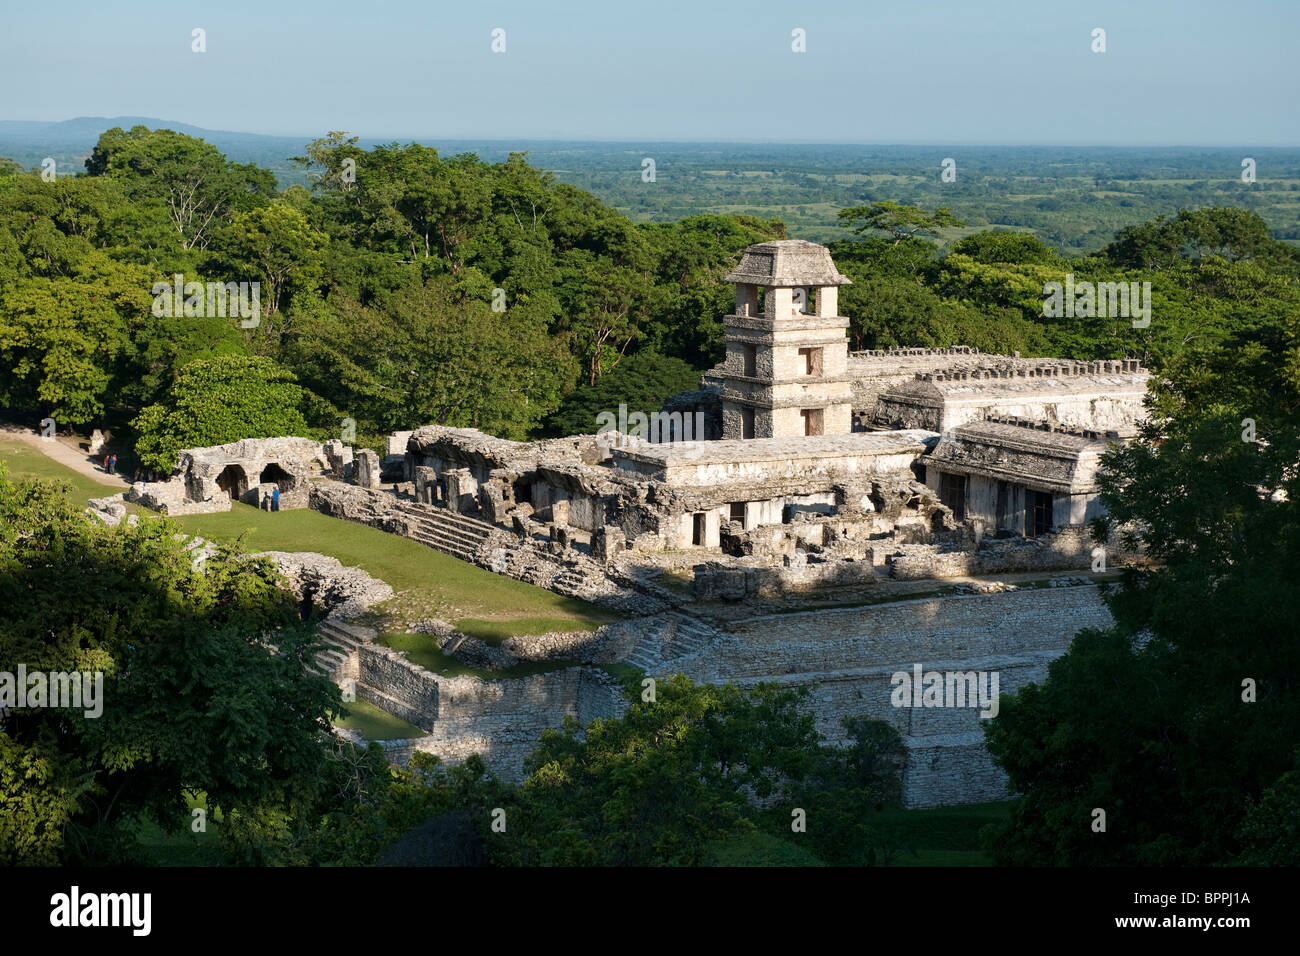 Maya ruins of Palenque, The Palace, Palenque, Mexico - Stock Image